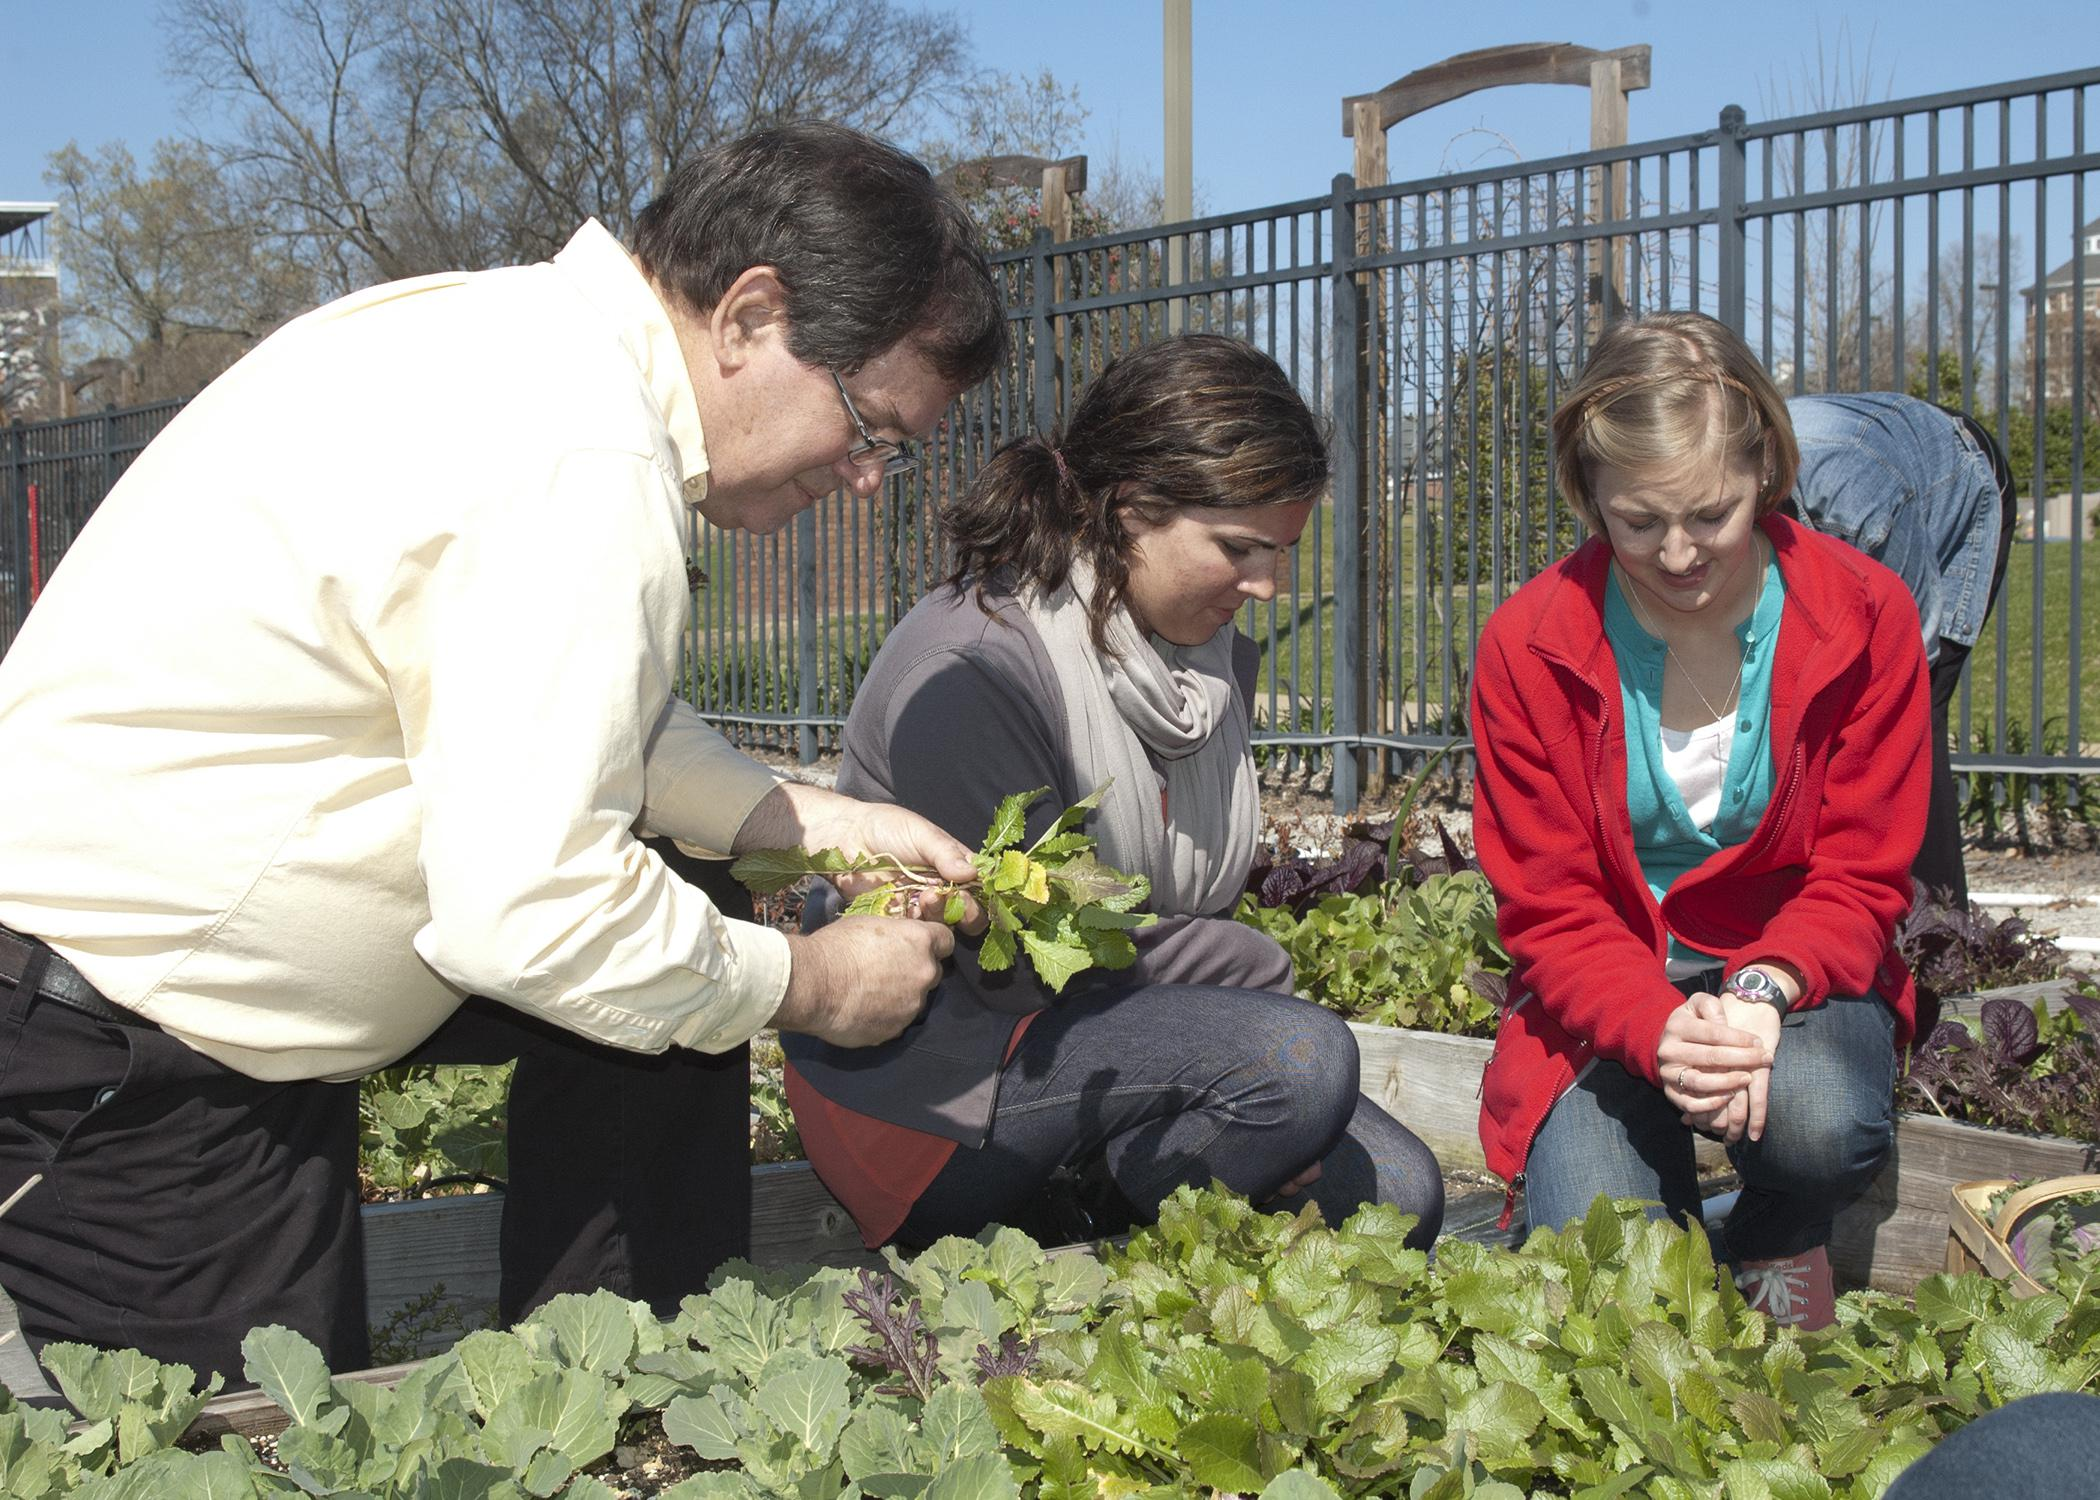 Mississippi State University professor David Nagel, left, oversees vegetable production students Bailey Martin and Anna Laurin Harrison as they harvest a fall crop in planters that grow edible landscapes outside a campus building. (File photo by MSU College of Forest Resources/Karen Brasher)